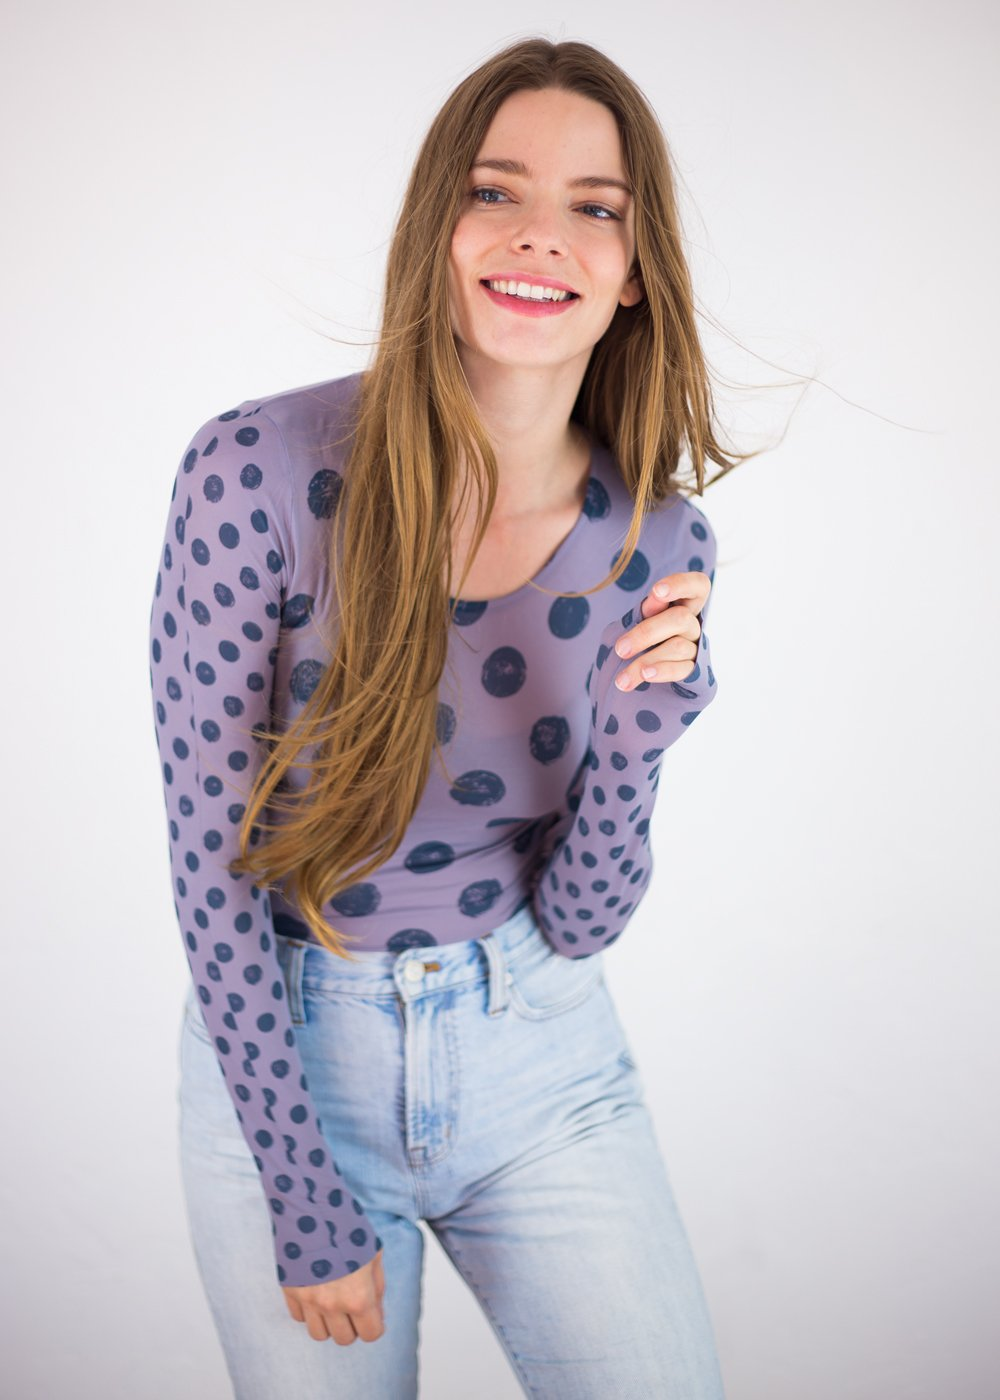 Grunge Polka Dot Crew Neck Top- New Colors!